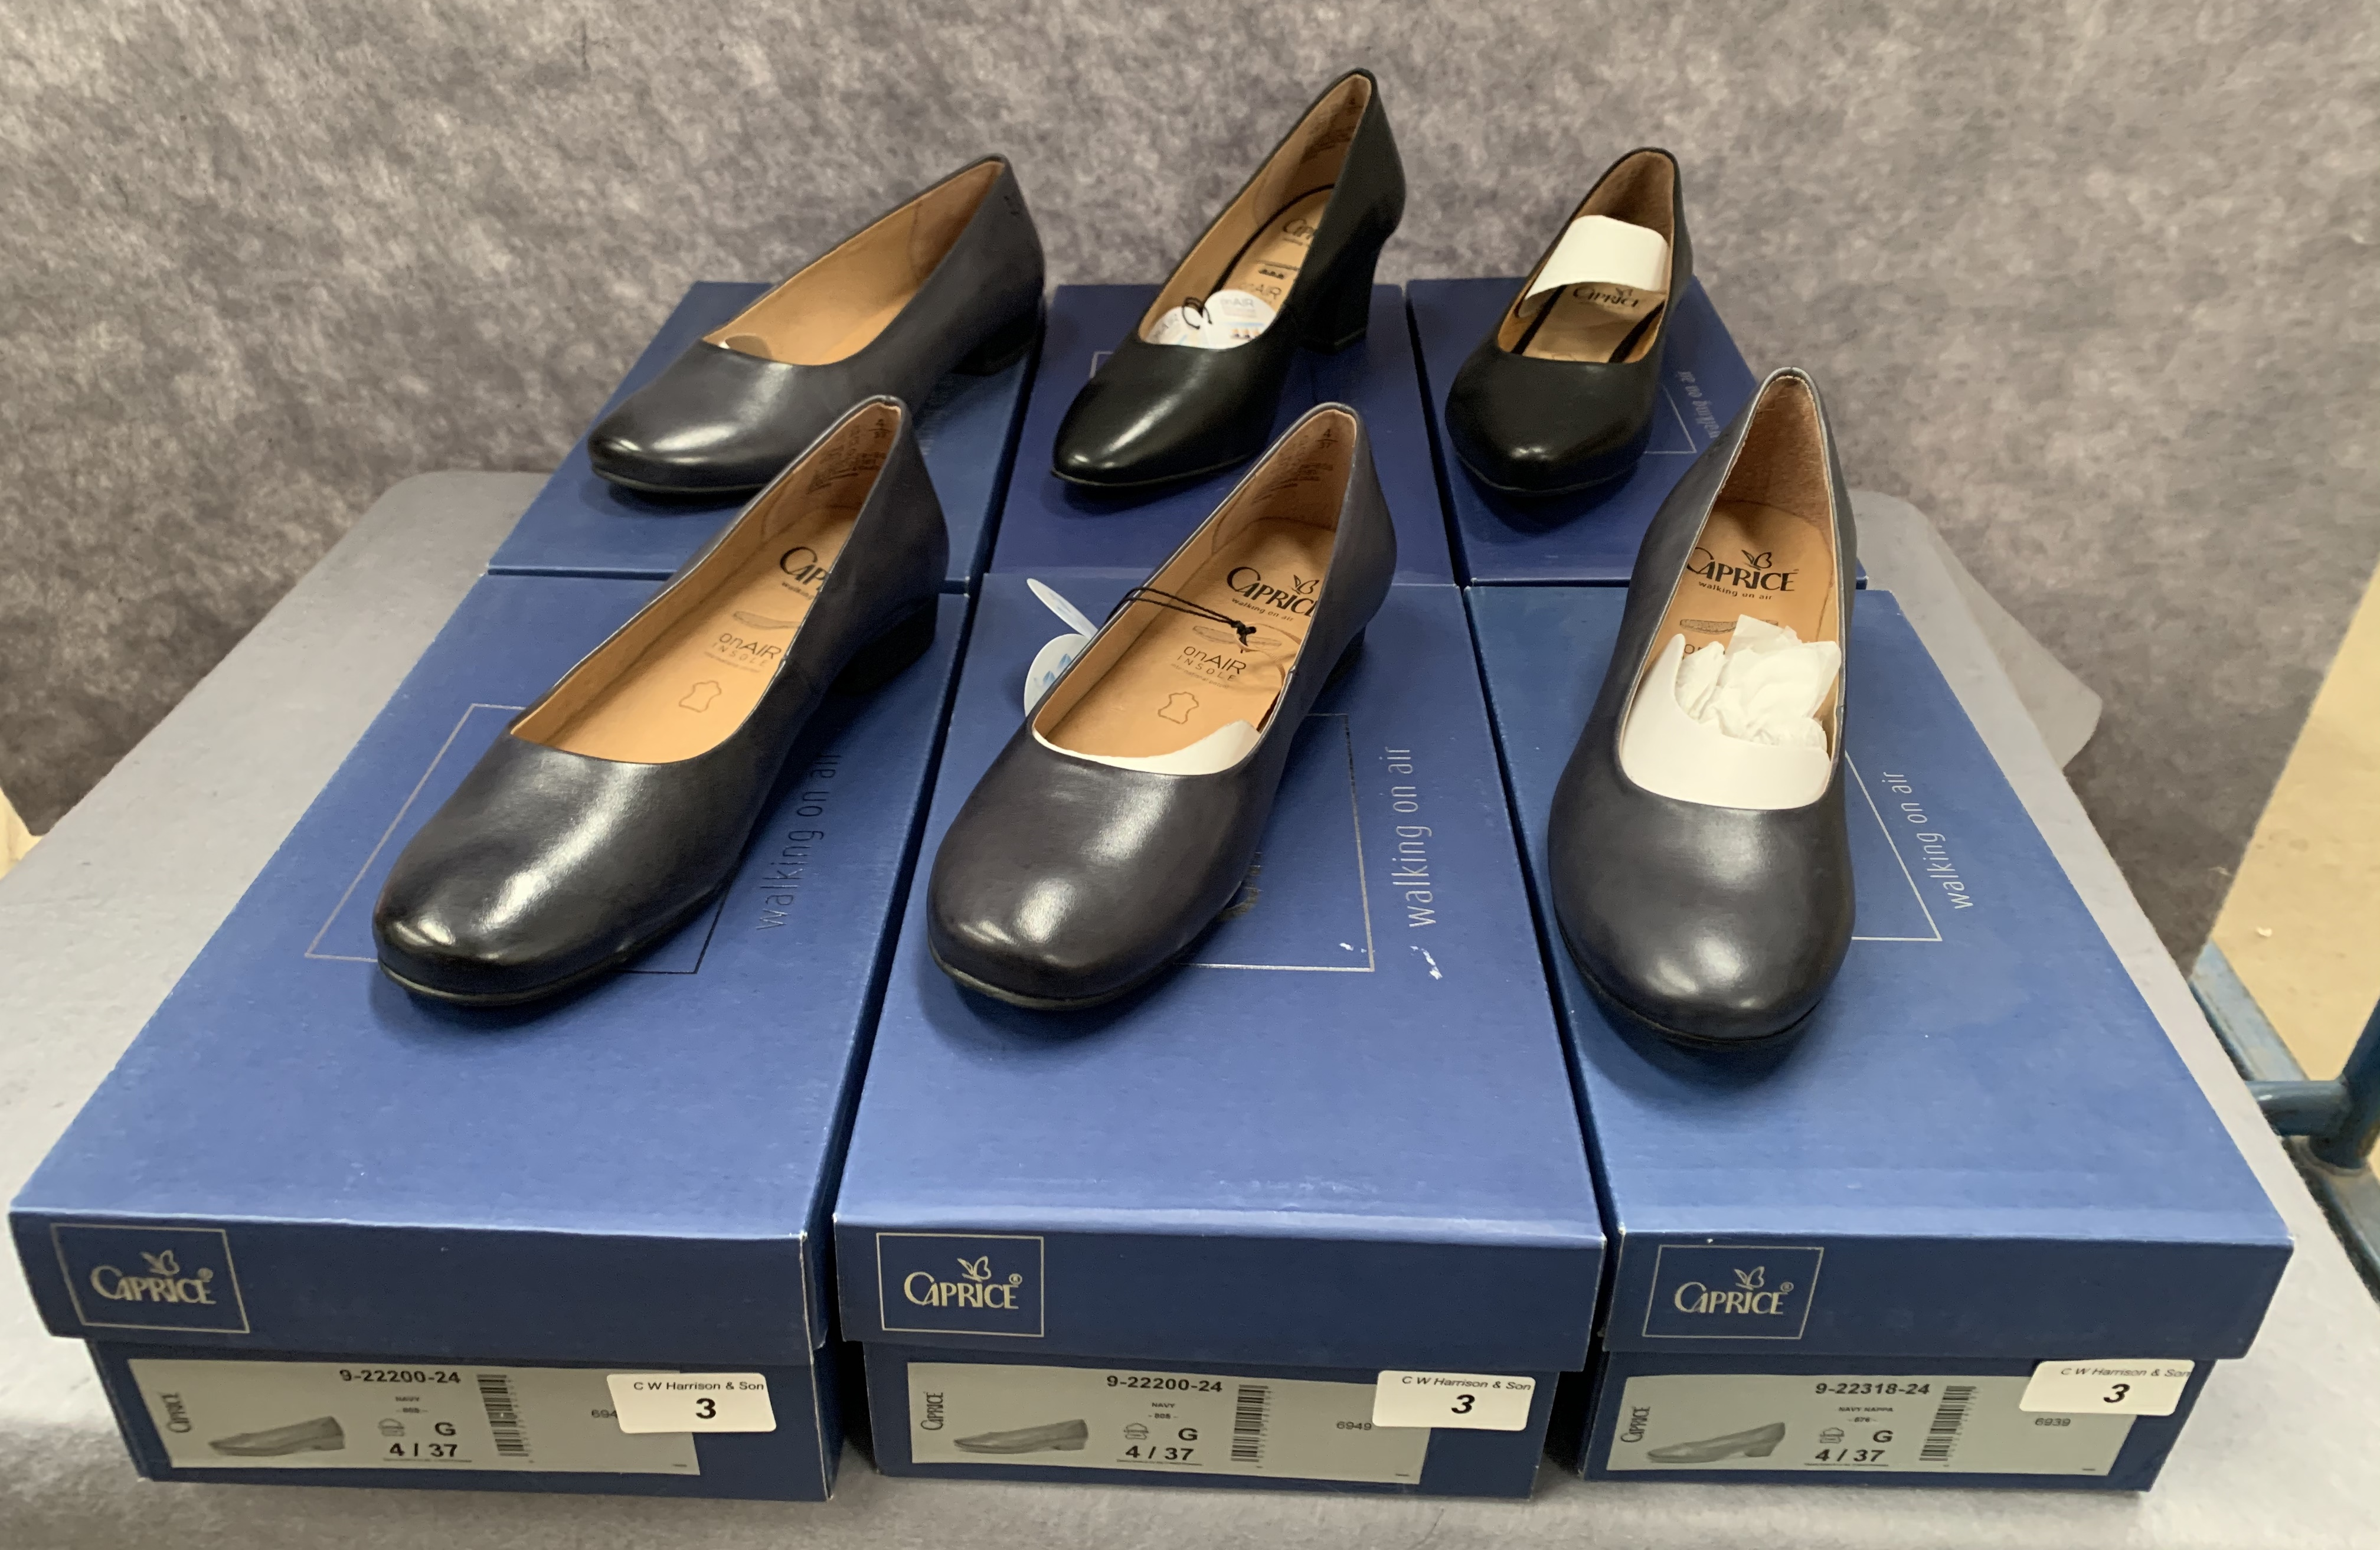 Six pairs of Caprice ladies shoes in black and navy, various styles, size 4, retail price £59.